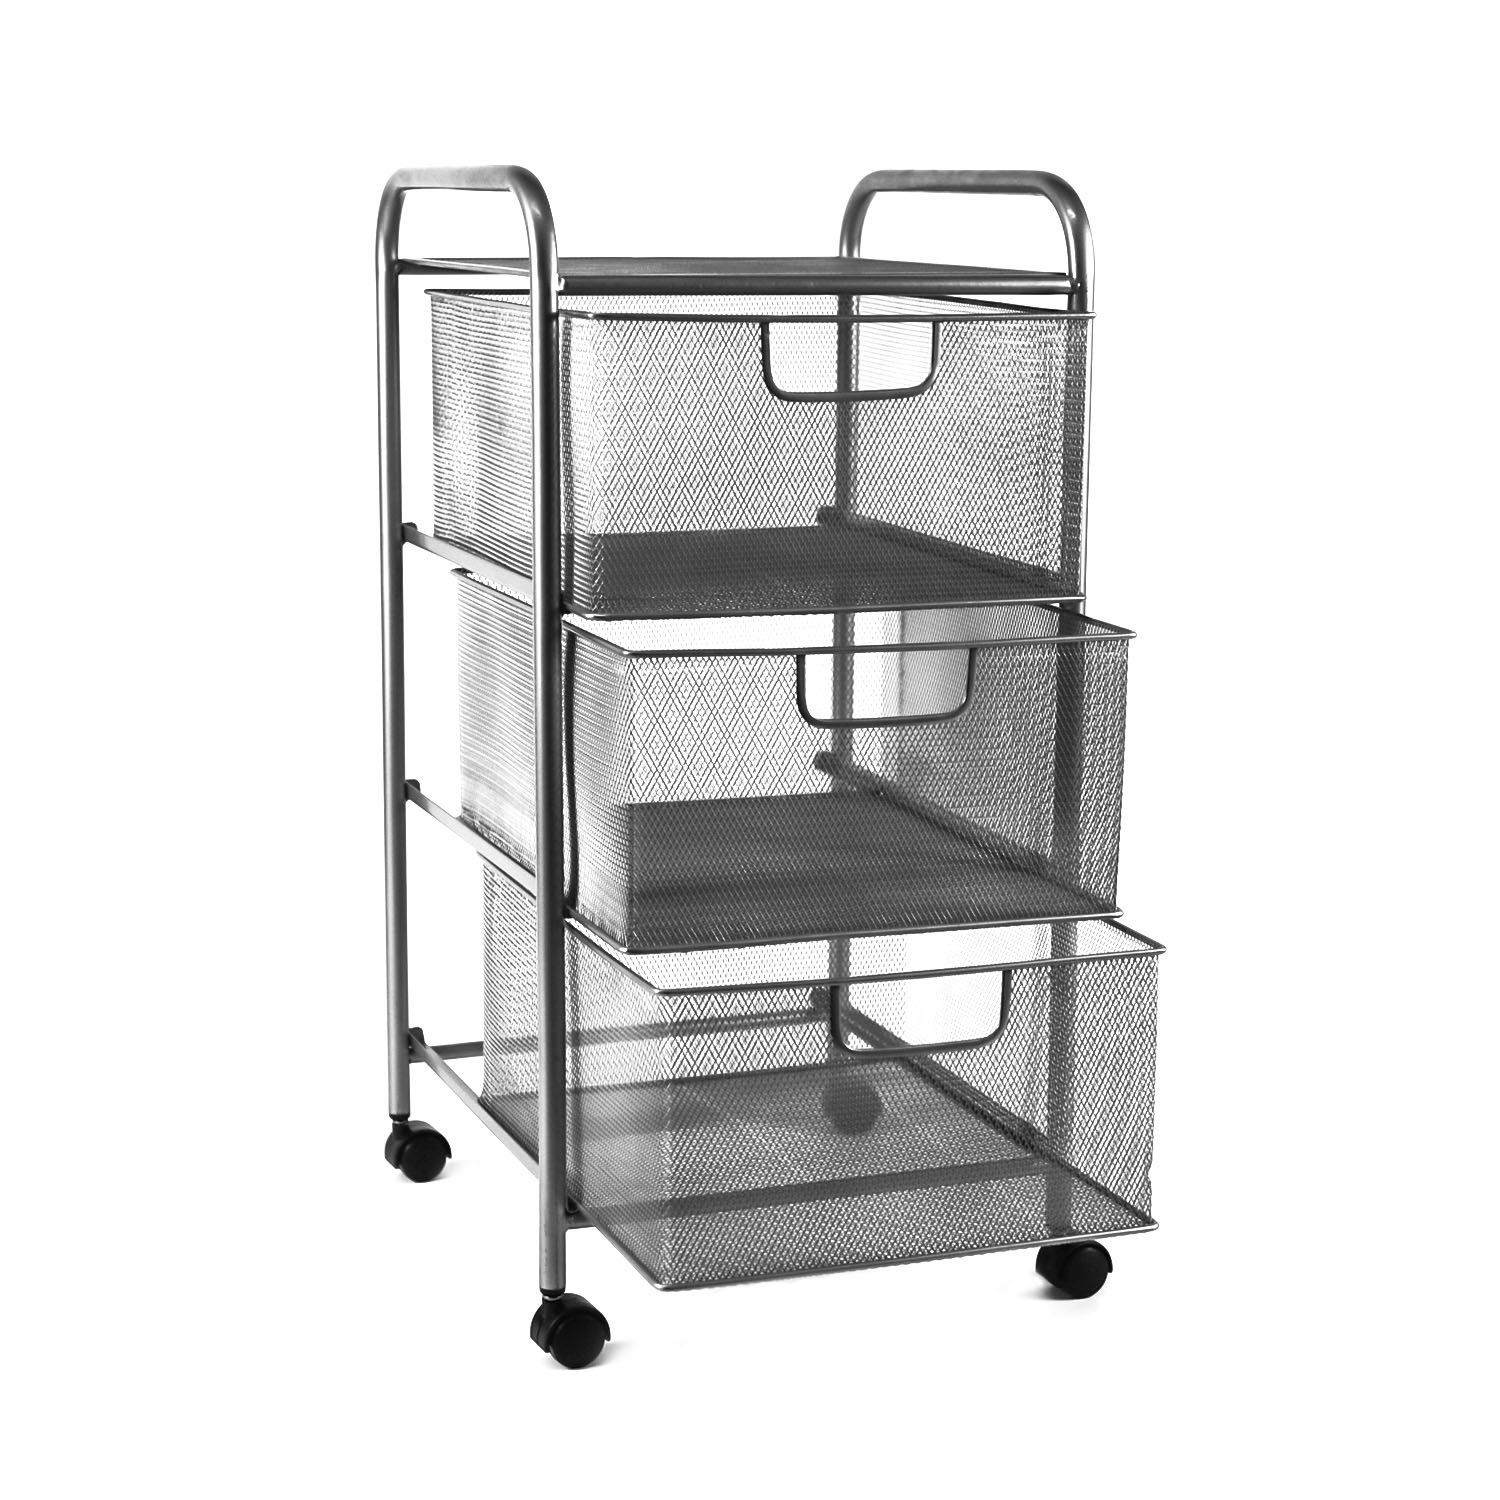 YIMU Mesh File Storage Cart with 3 Drawers 3 Tier Letter Size Metal Office Supply  sc 1 st  Pinterest & YIMU Mesh File Storage Cart with 3 Drawers 3 Tier Letter Size Metal ...